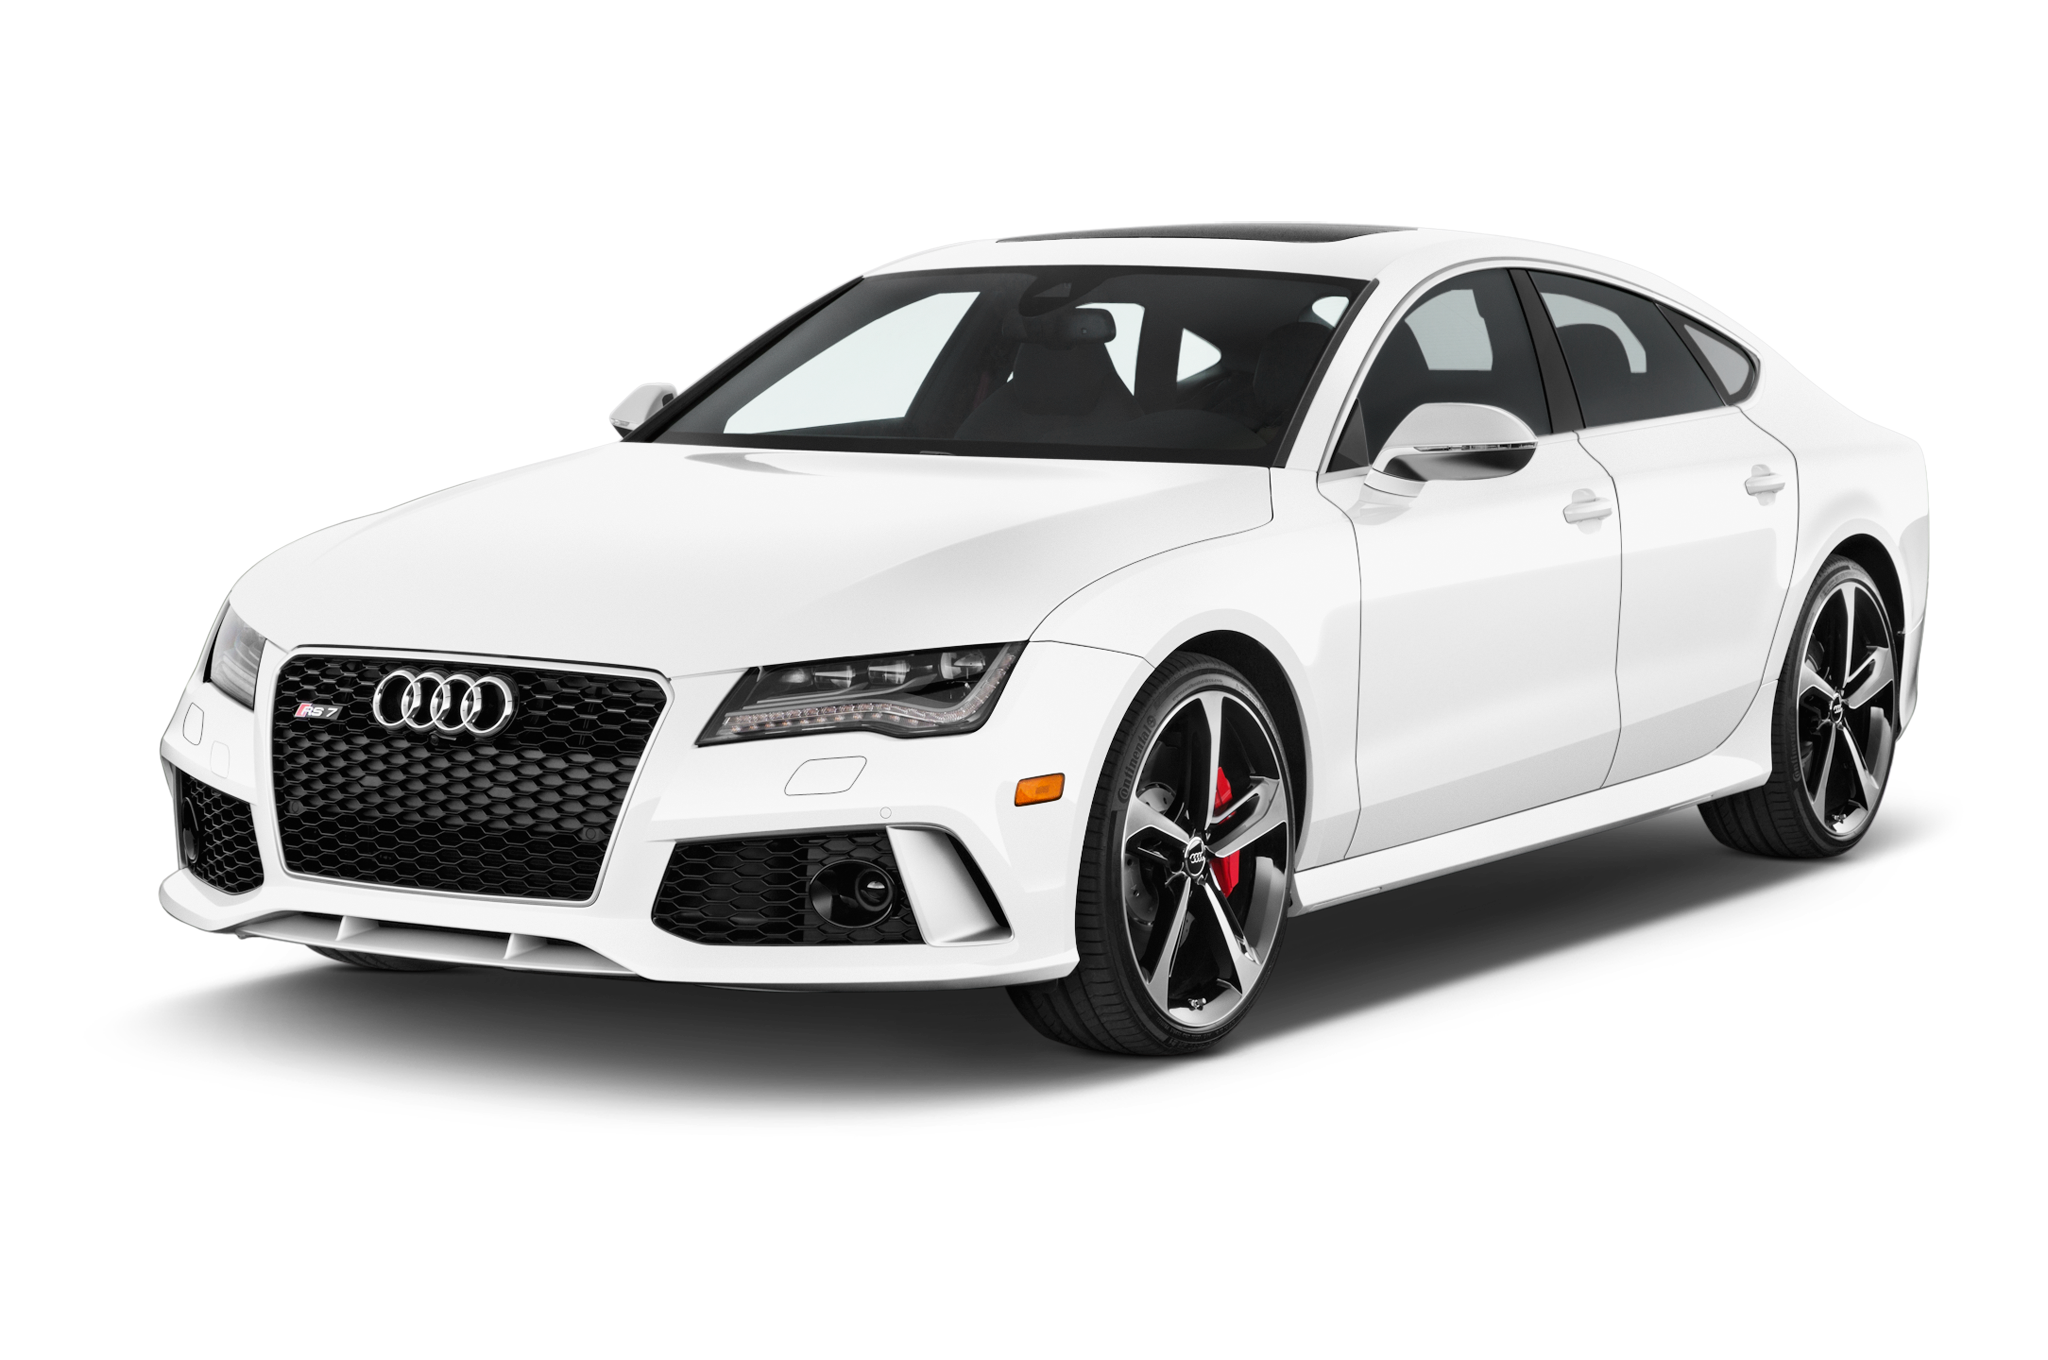 Why Do You Want An Audi Let Me Tell You - Aadi car images